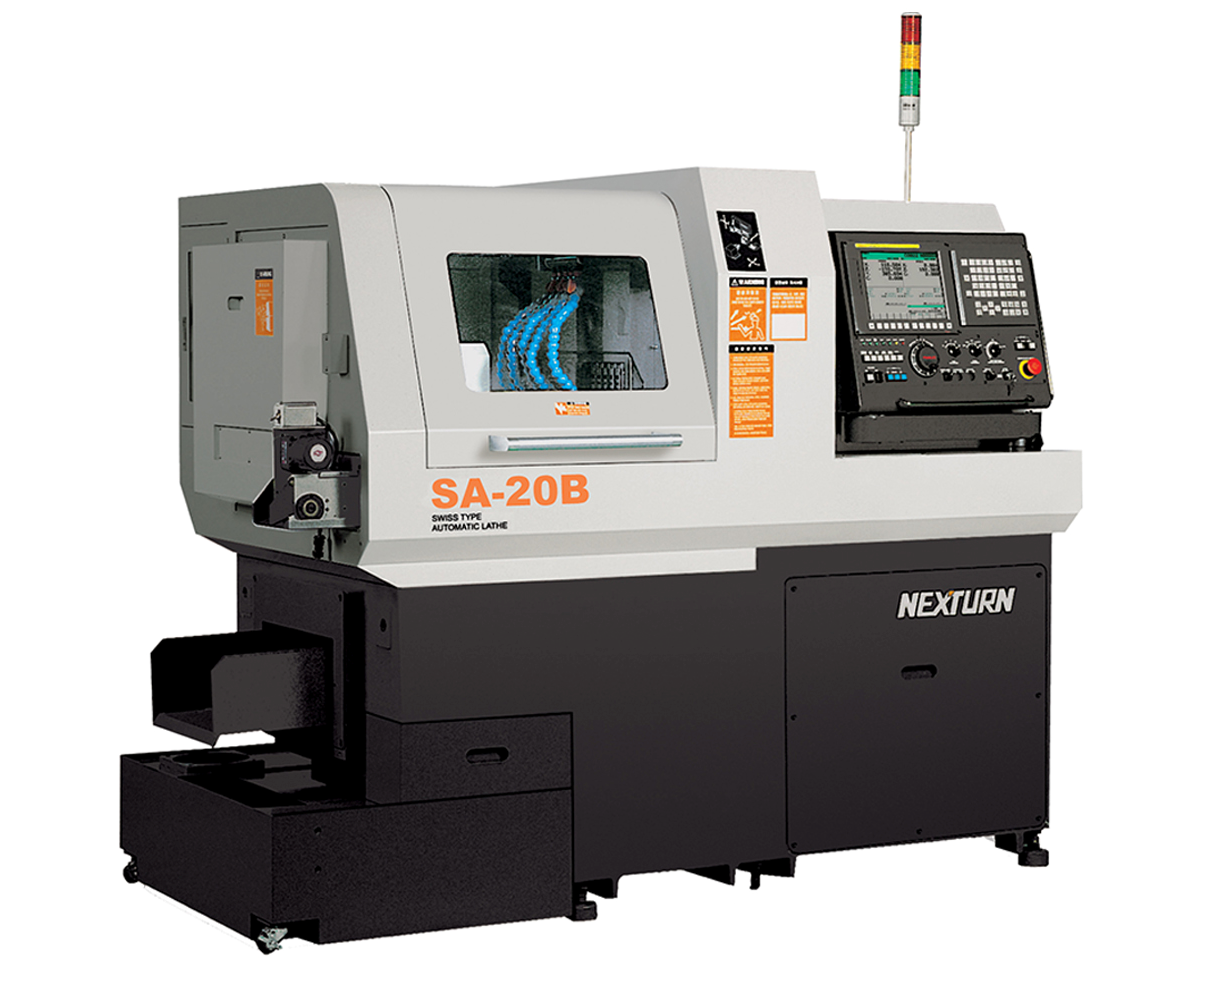 Nexturn SA-20B Absolute Machine Tools